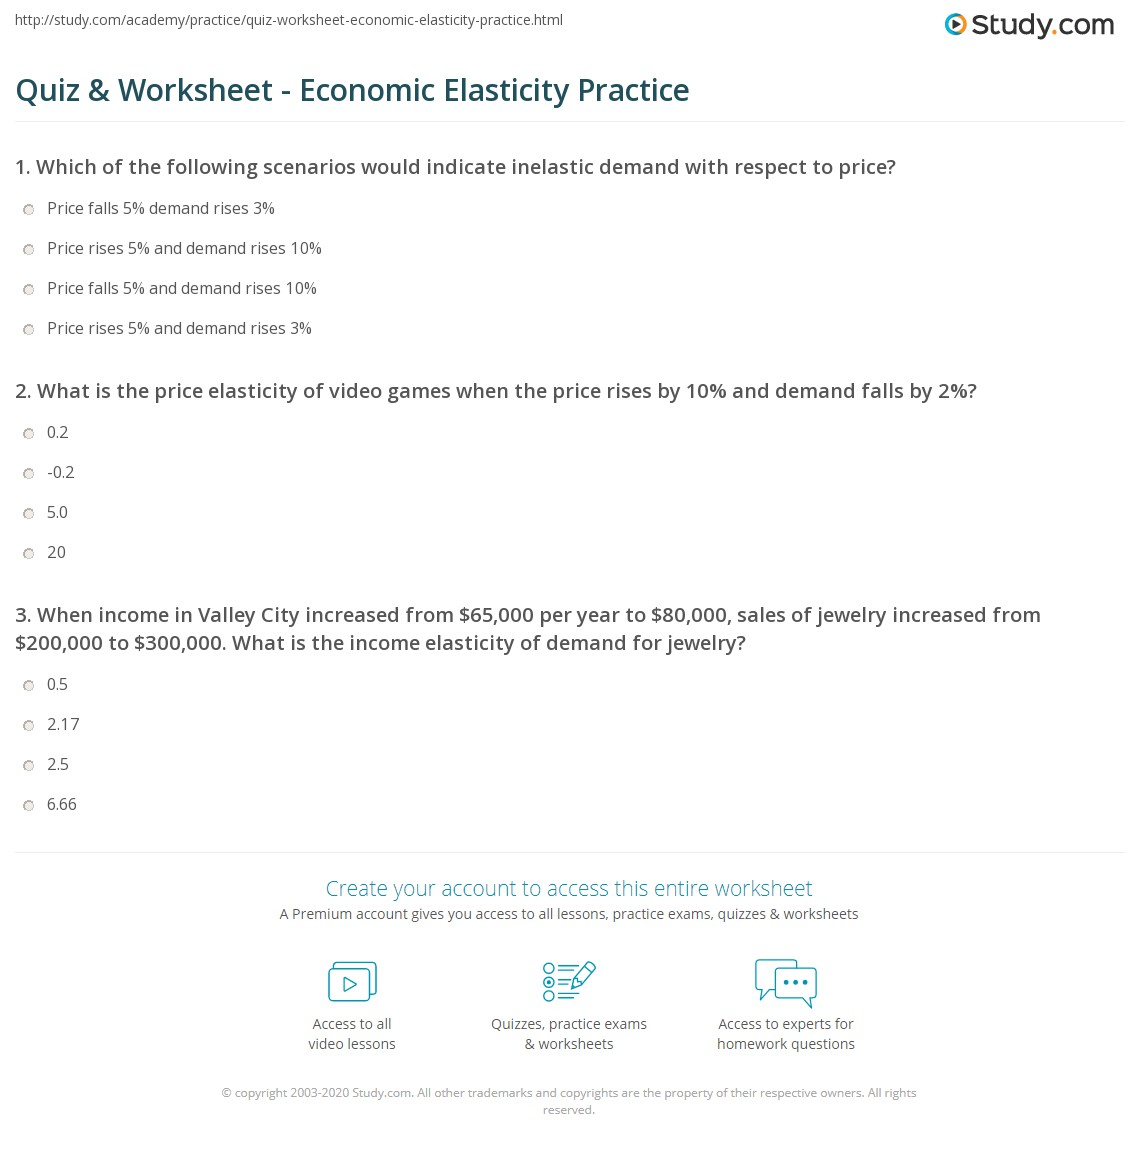 quiz worksheet economic elasticity practice. Black Bedroom Furniture Sets. Home Design Ideas